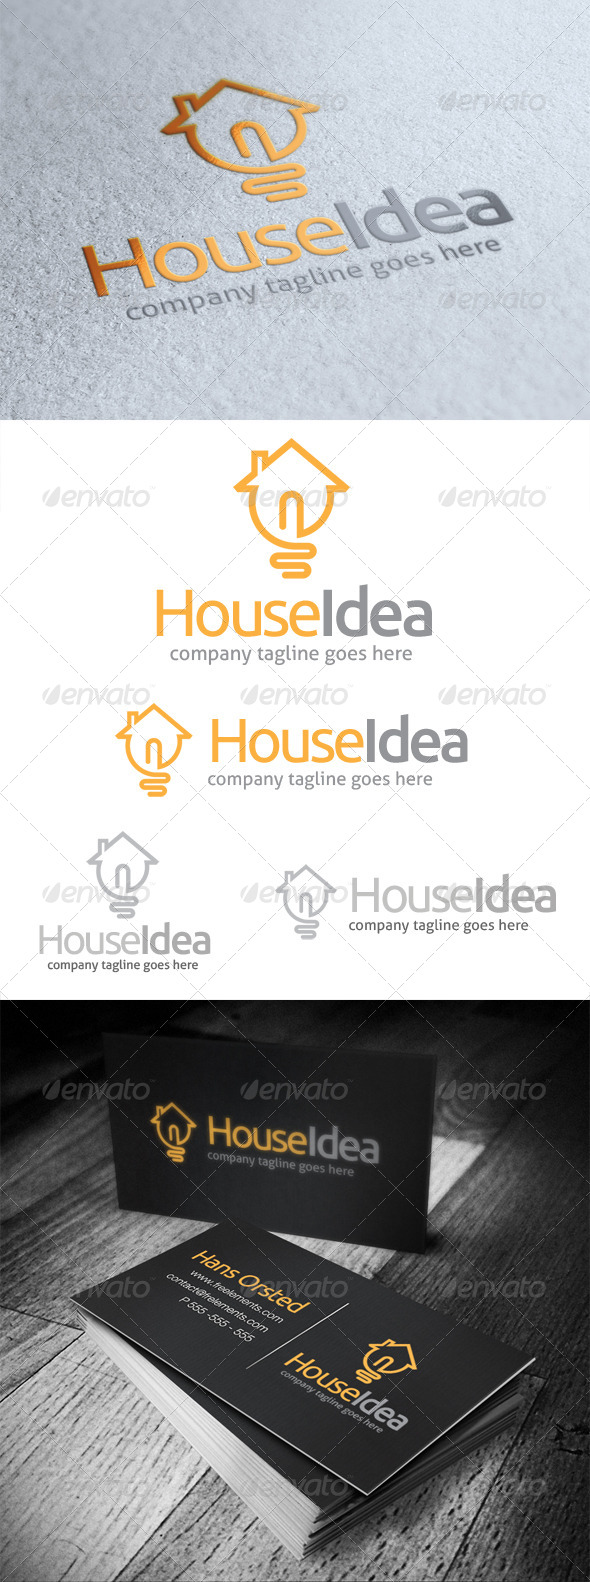 GraphicRiver House Idea Logo 5351114